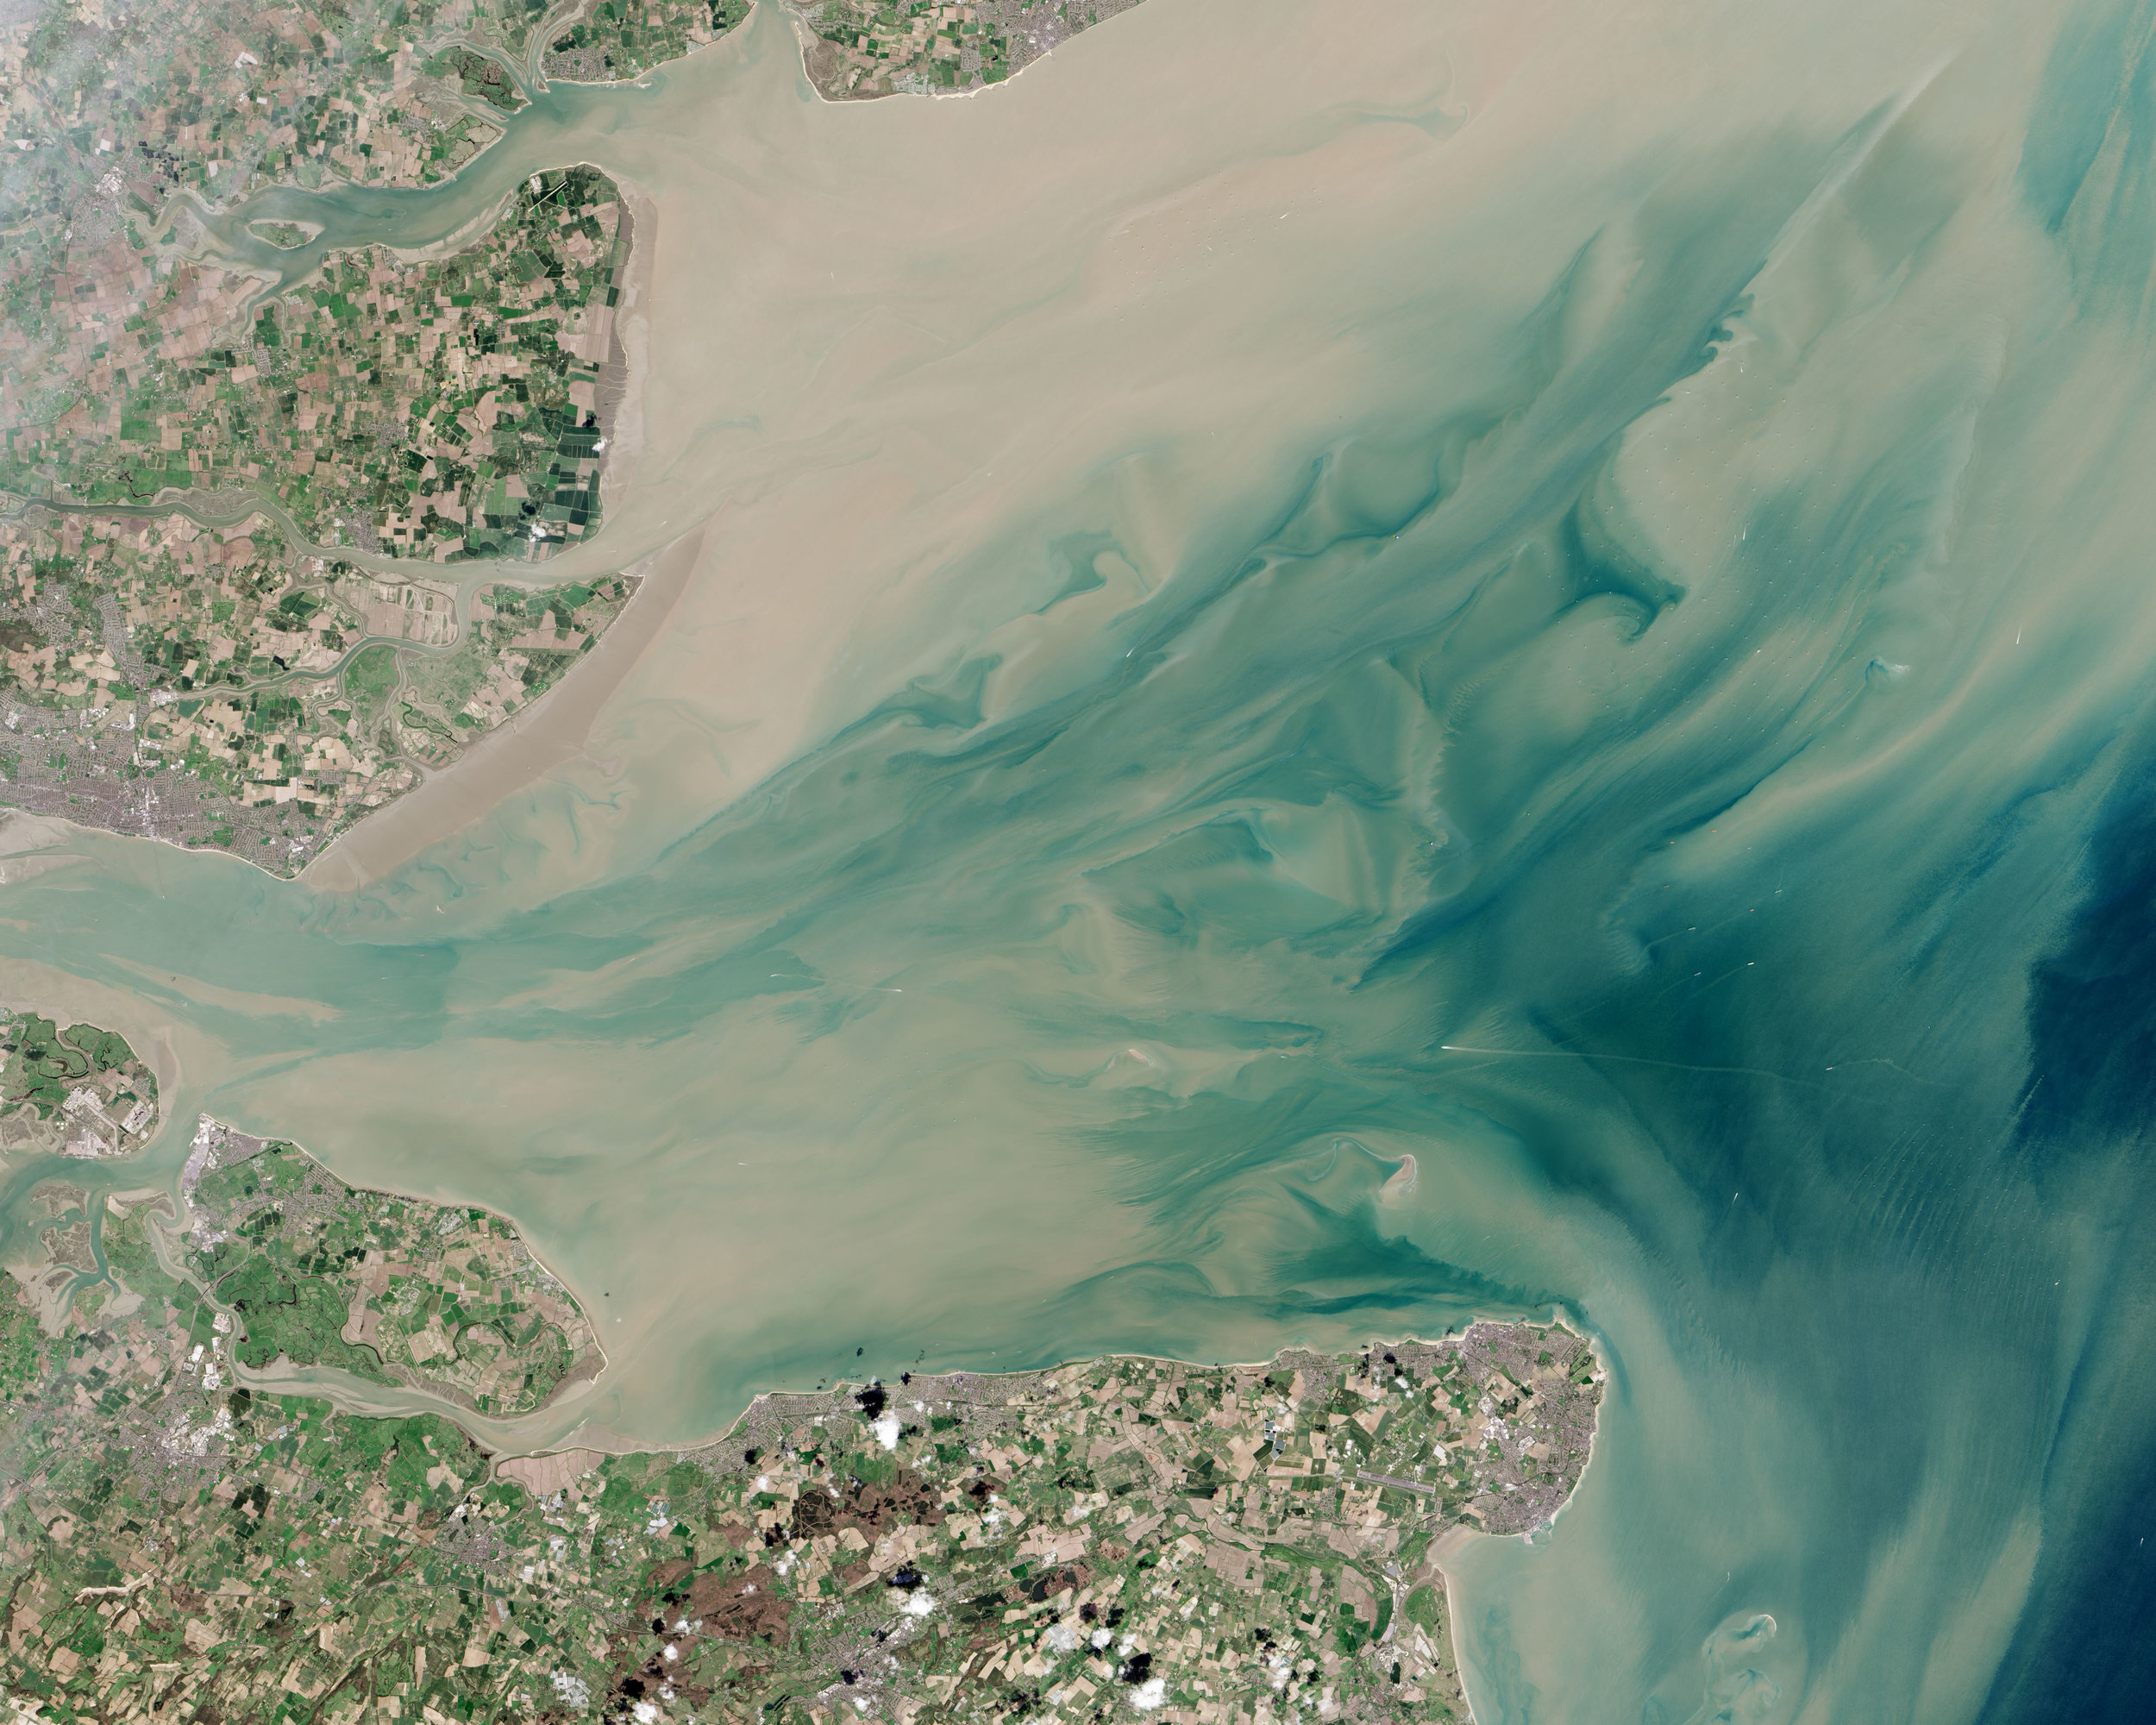 Thames_Estuary_and_Wind_Farms_from_Space_NASA.jpg